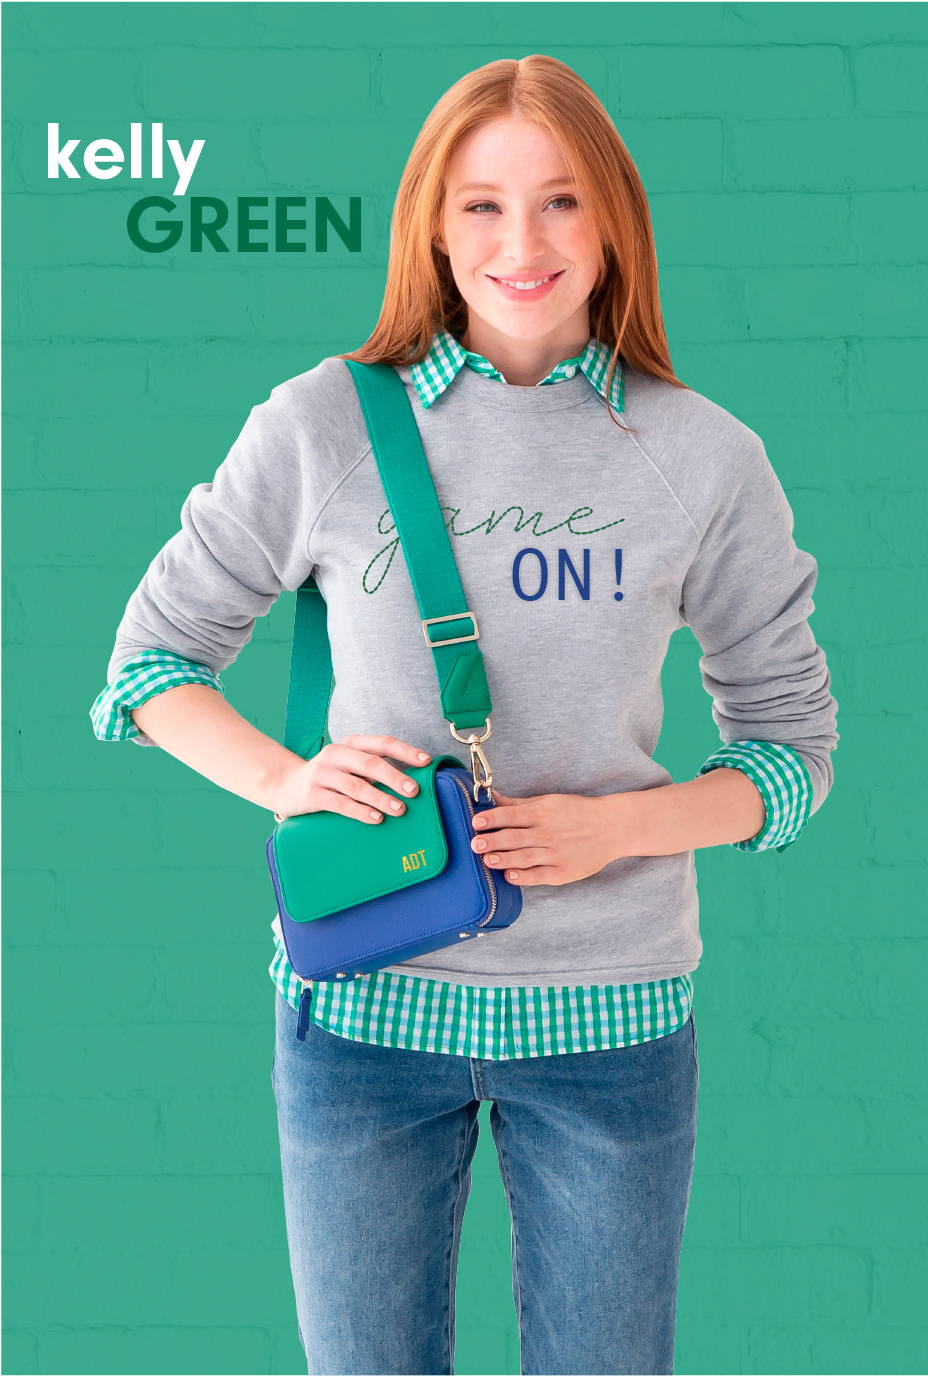 new spring color Kelly Green bright green